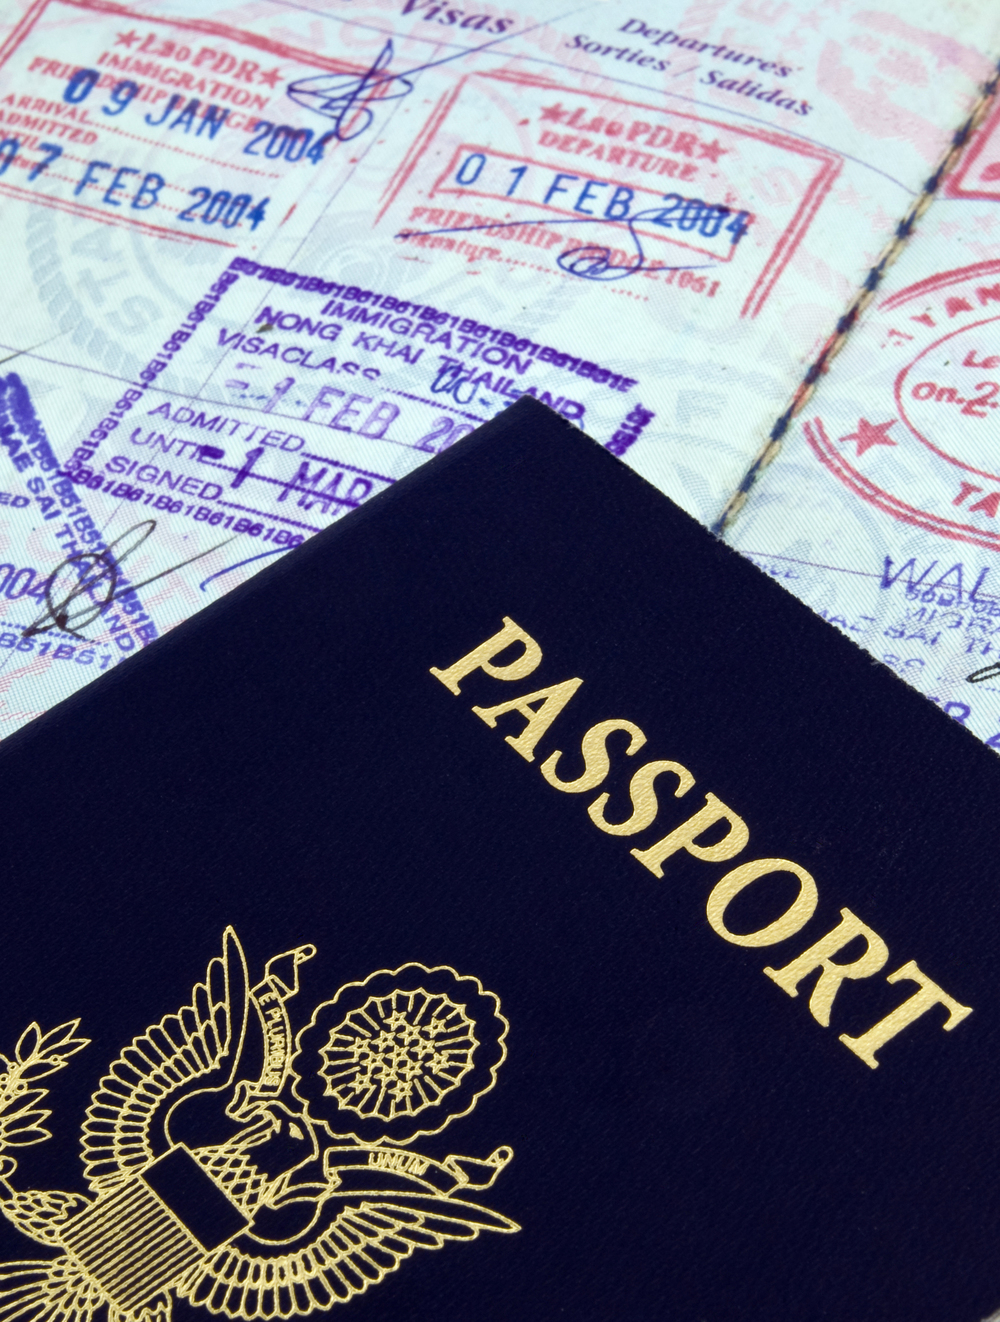 Traveling To Europe Passport Expires In  Months